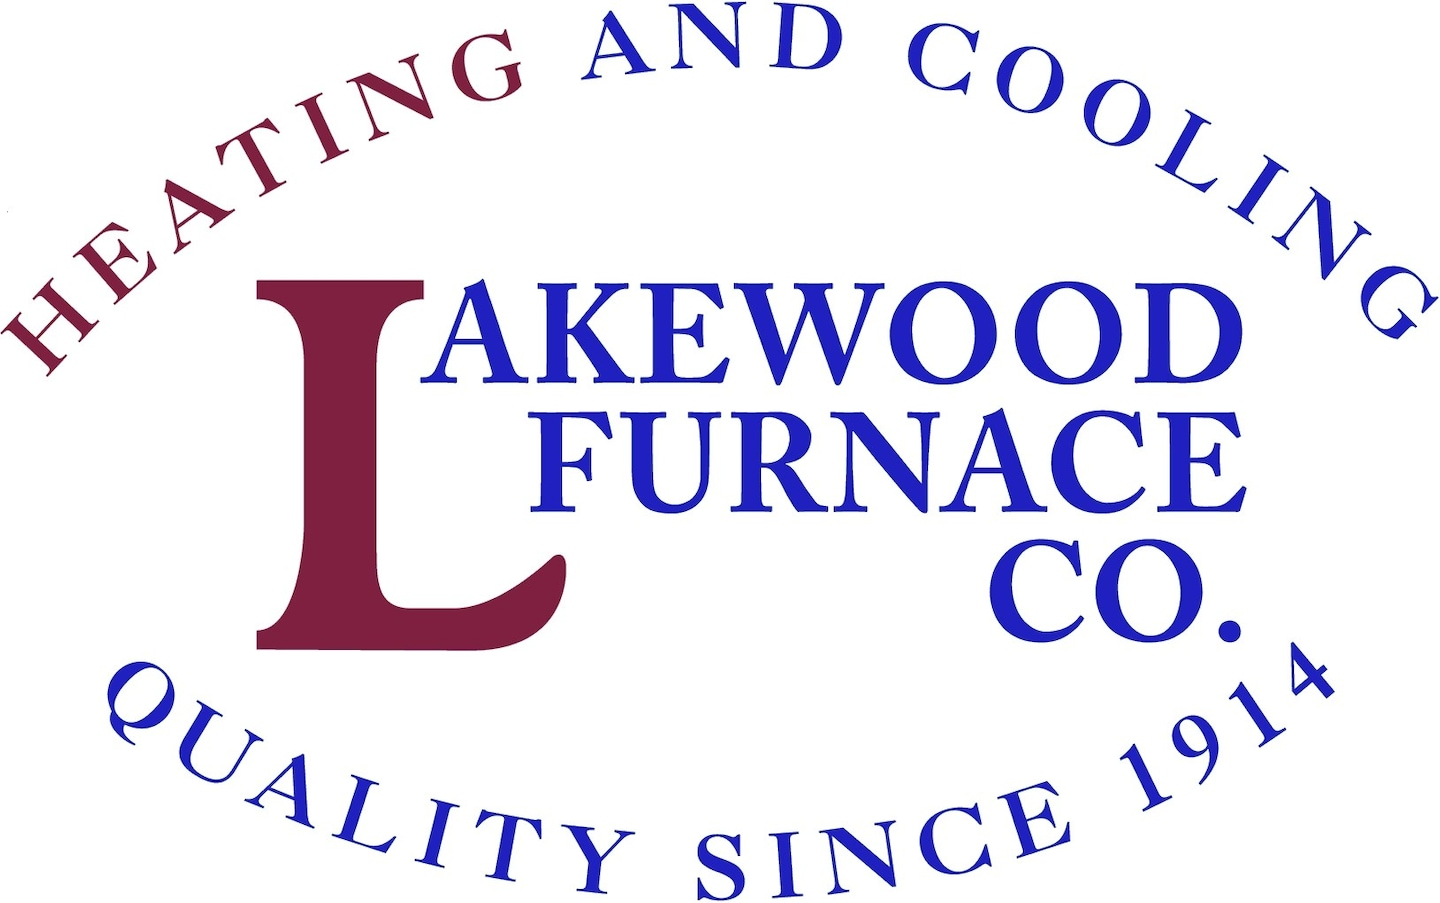 Lakewood Furnace Co